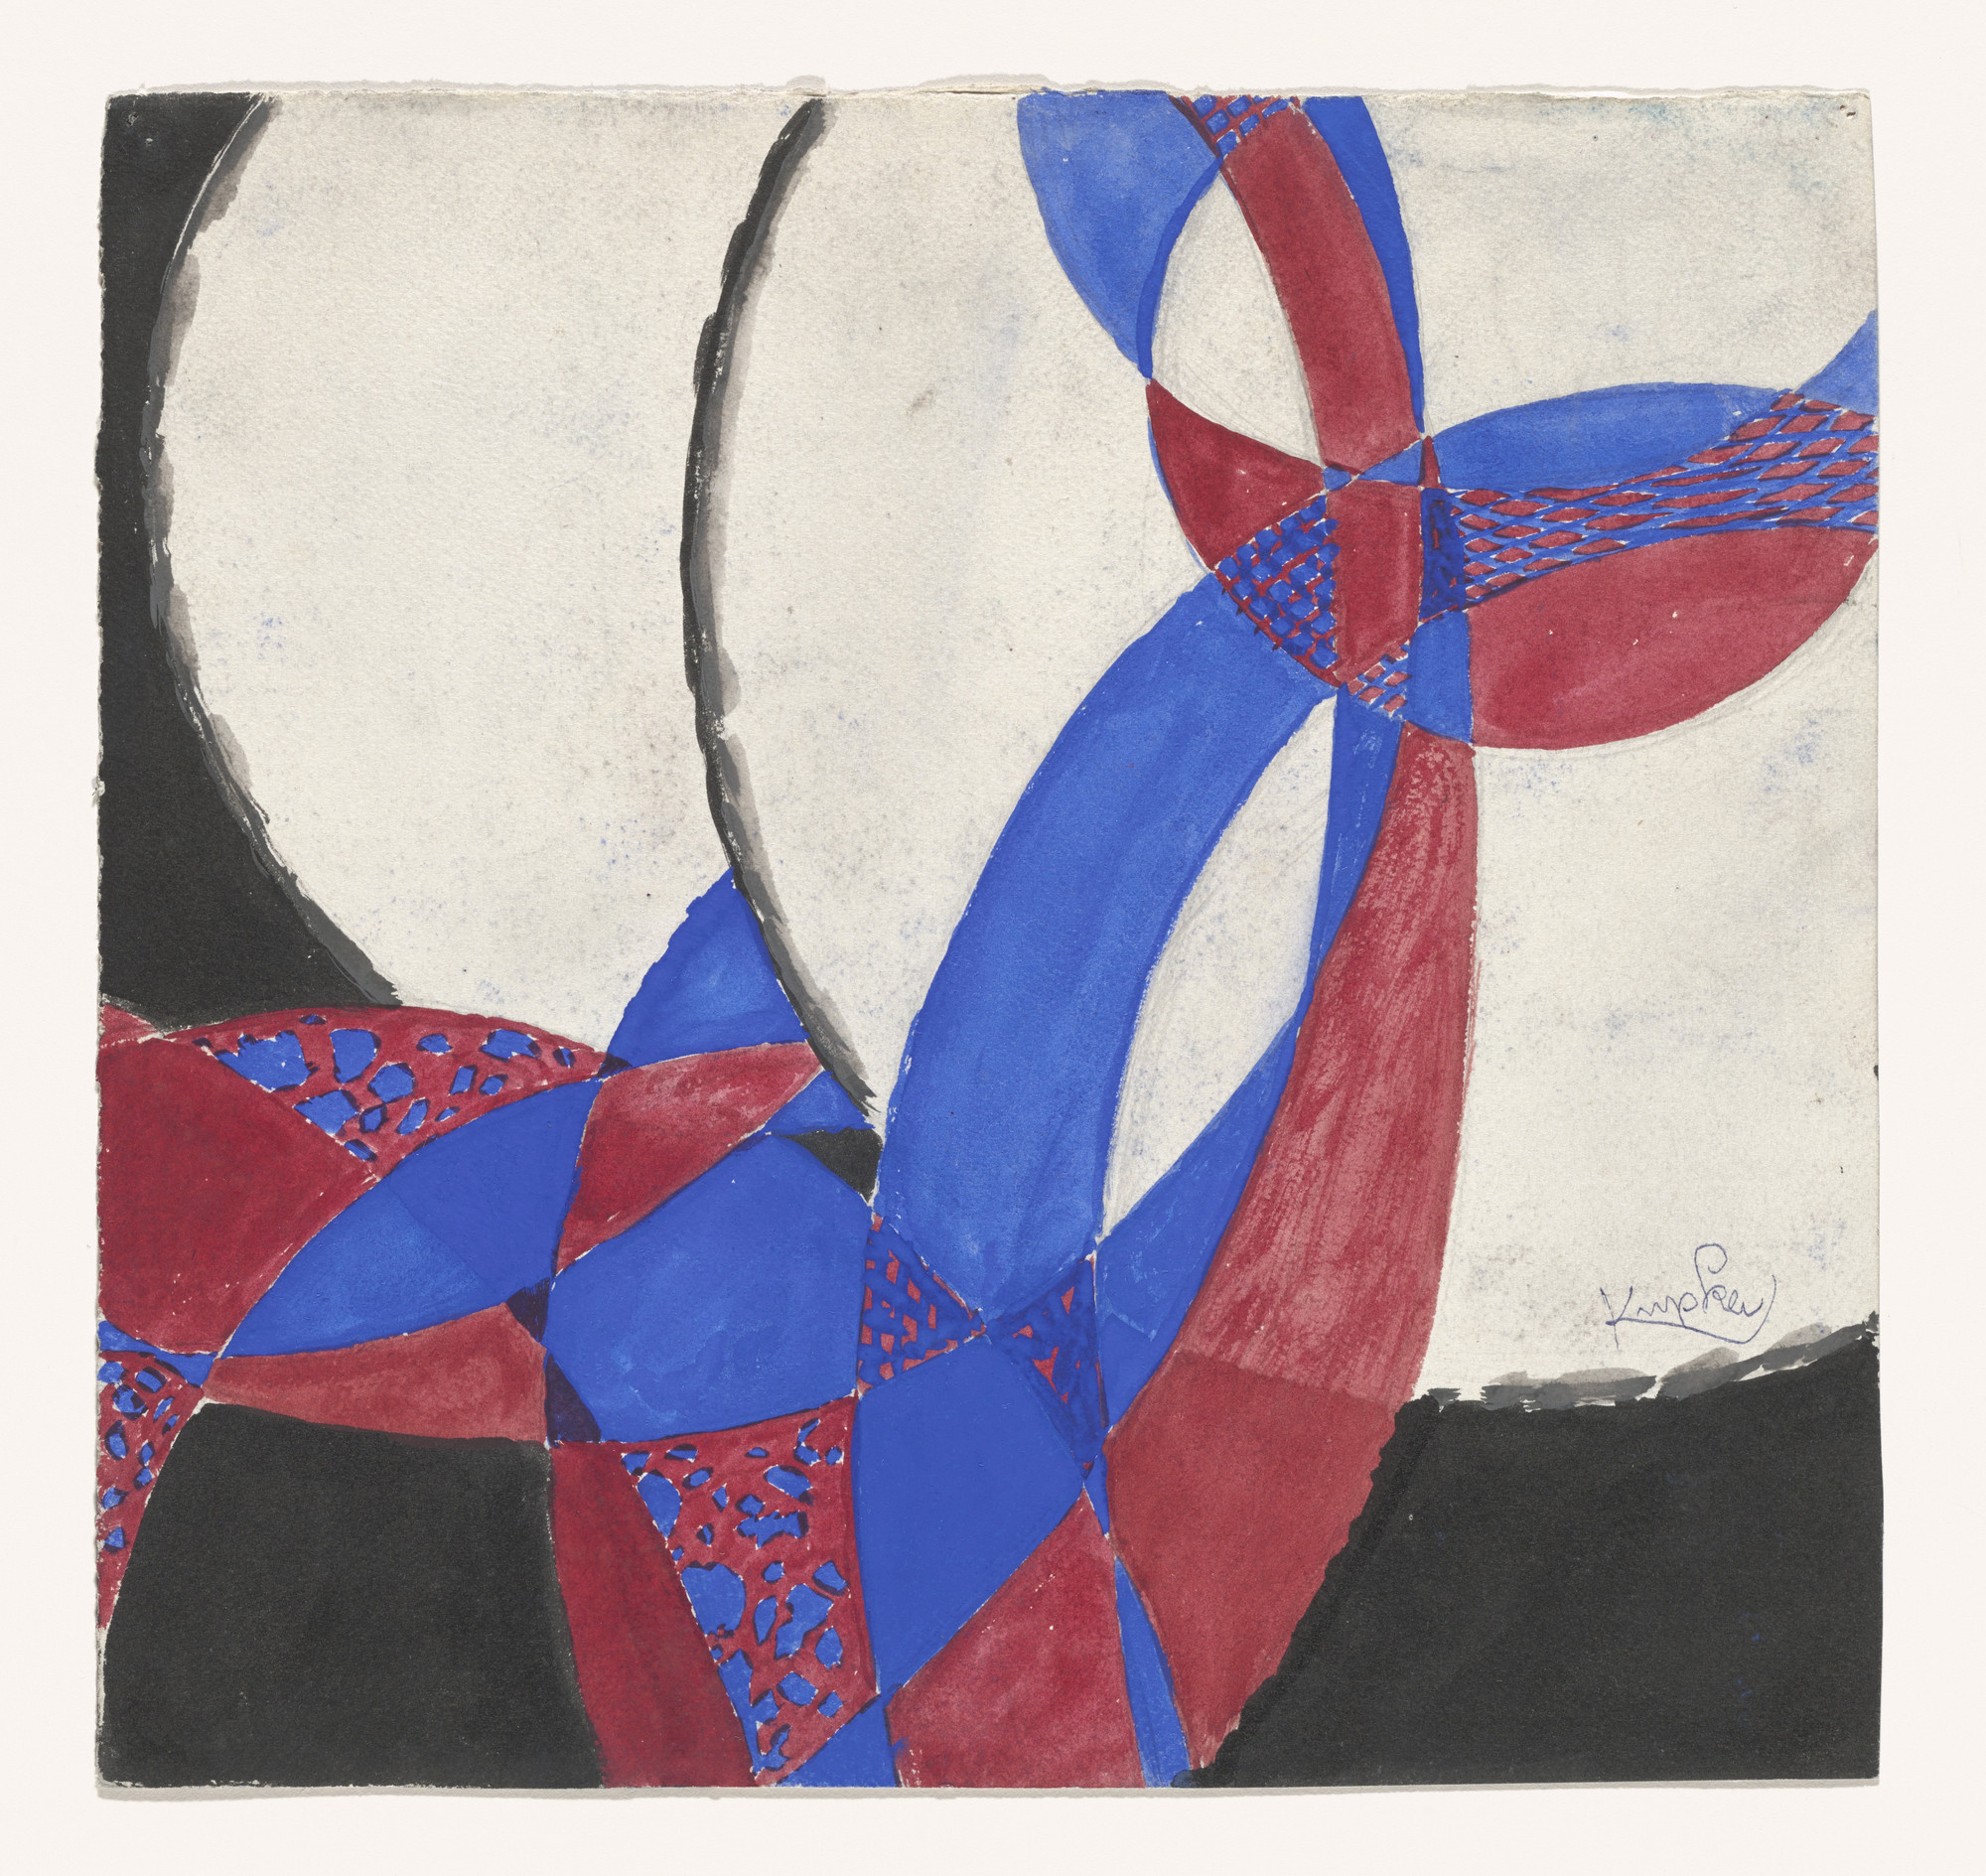 František Kupka. Amorpha: Fugue in Two Colors. 1912